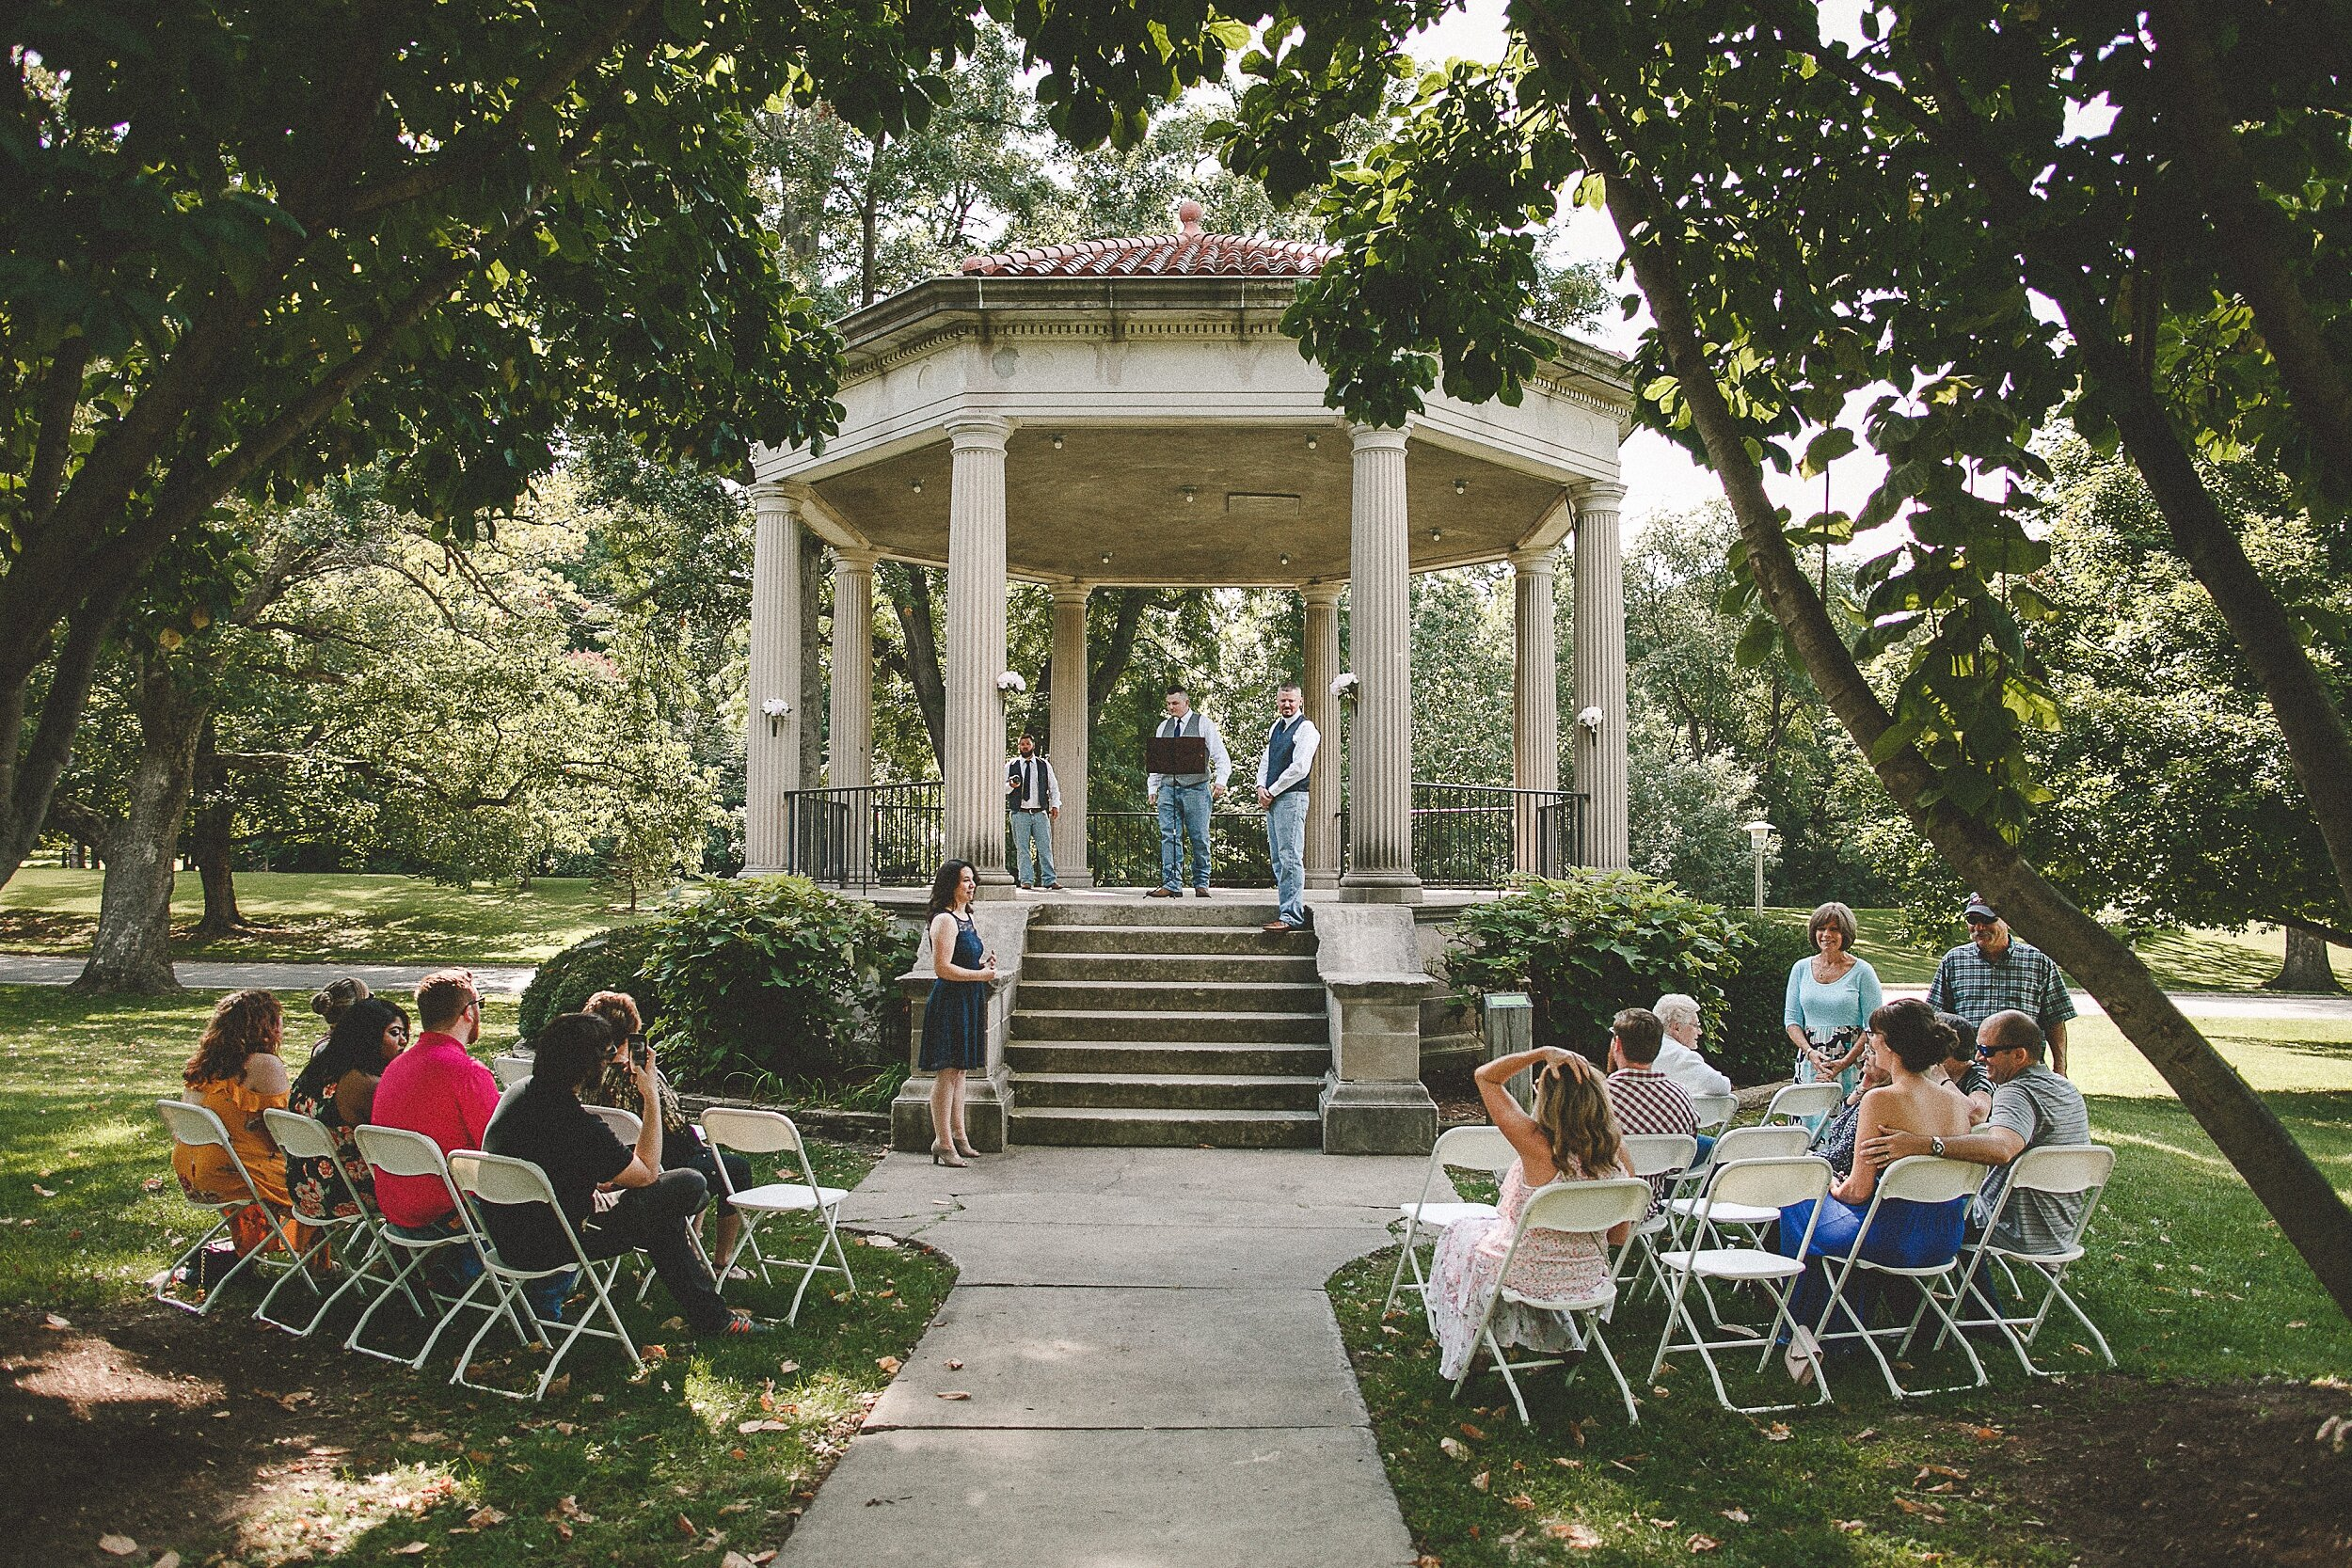 washington-park-gazebo-springfield-il-wedding-photography_0024.jpg